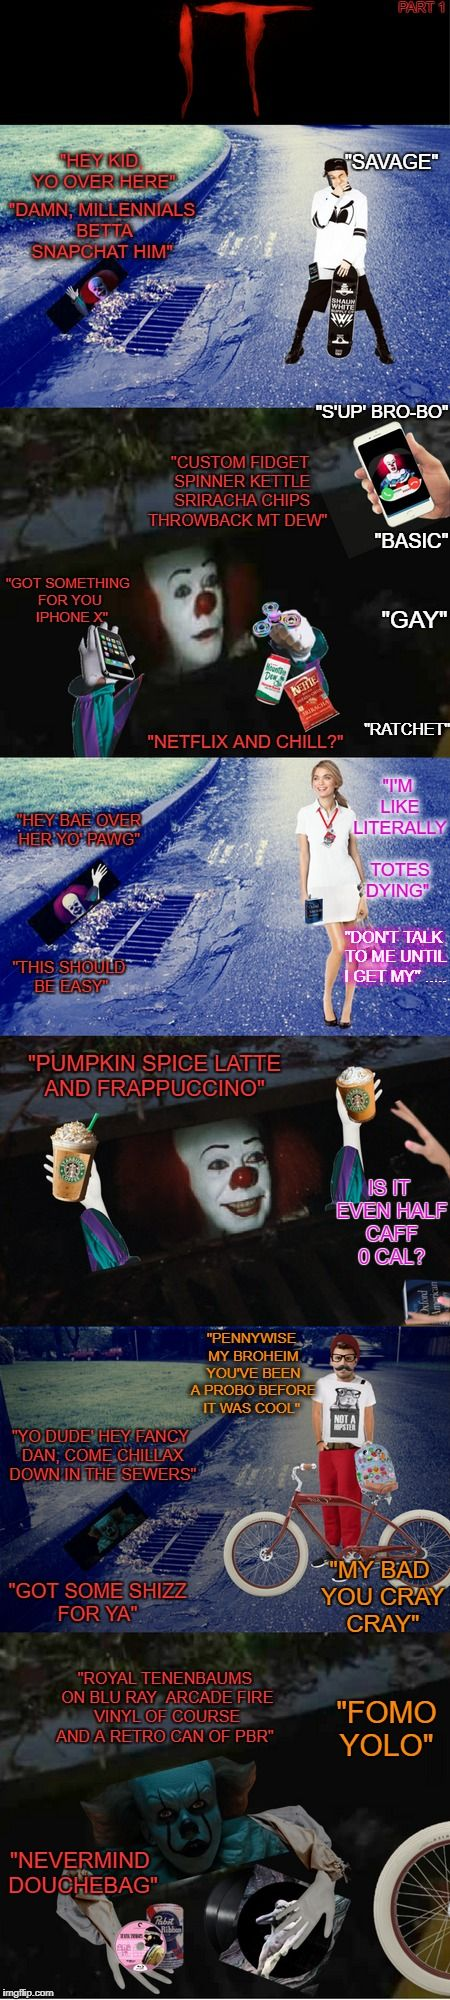 Pennywise Stumbleupon Urban Dictionary. Float down in the sewers 2017.